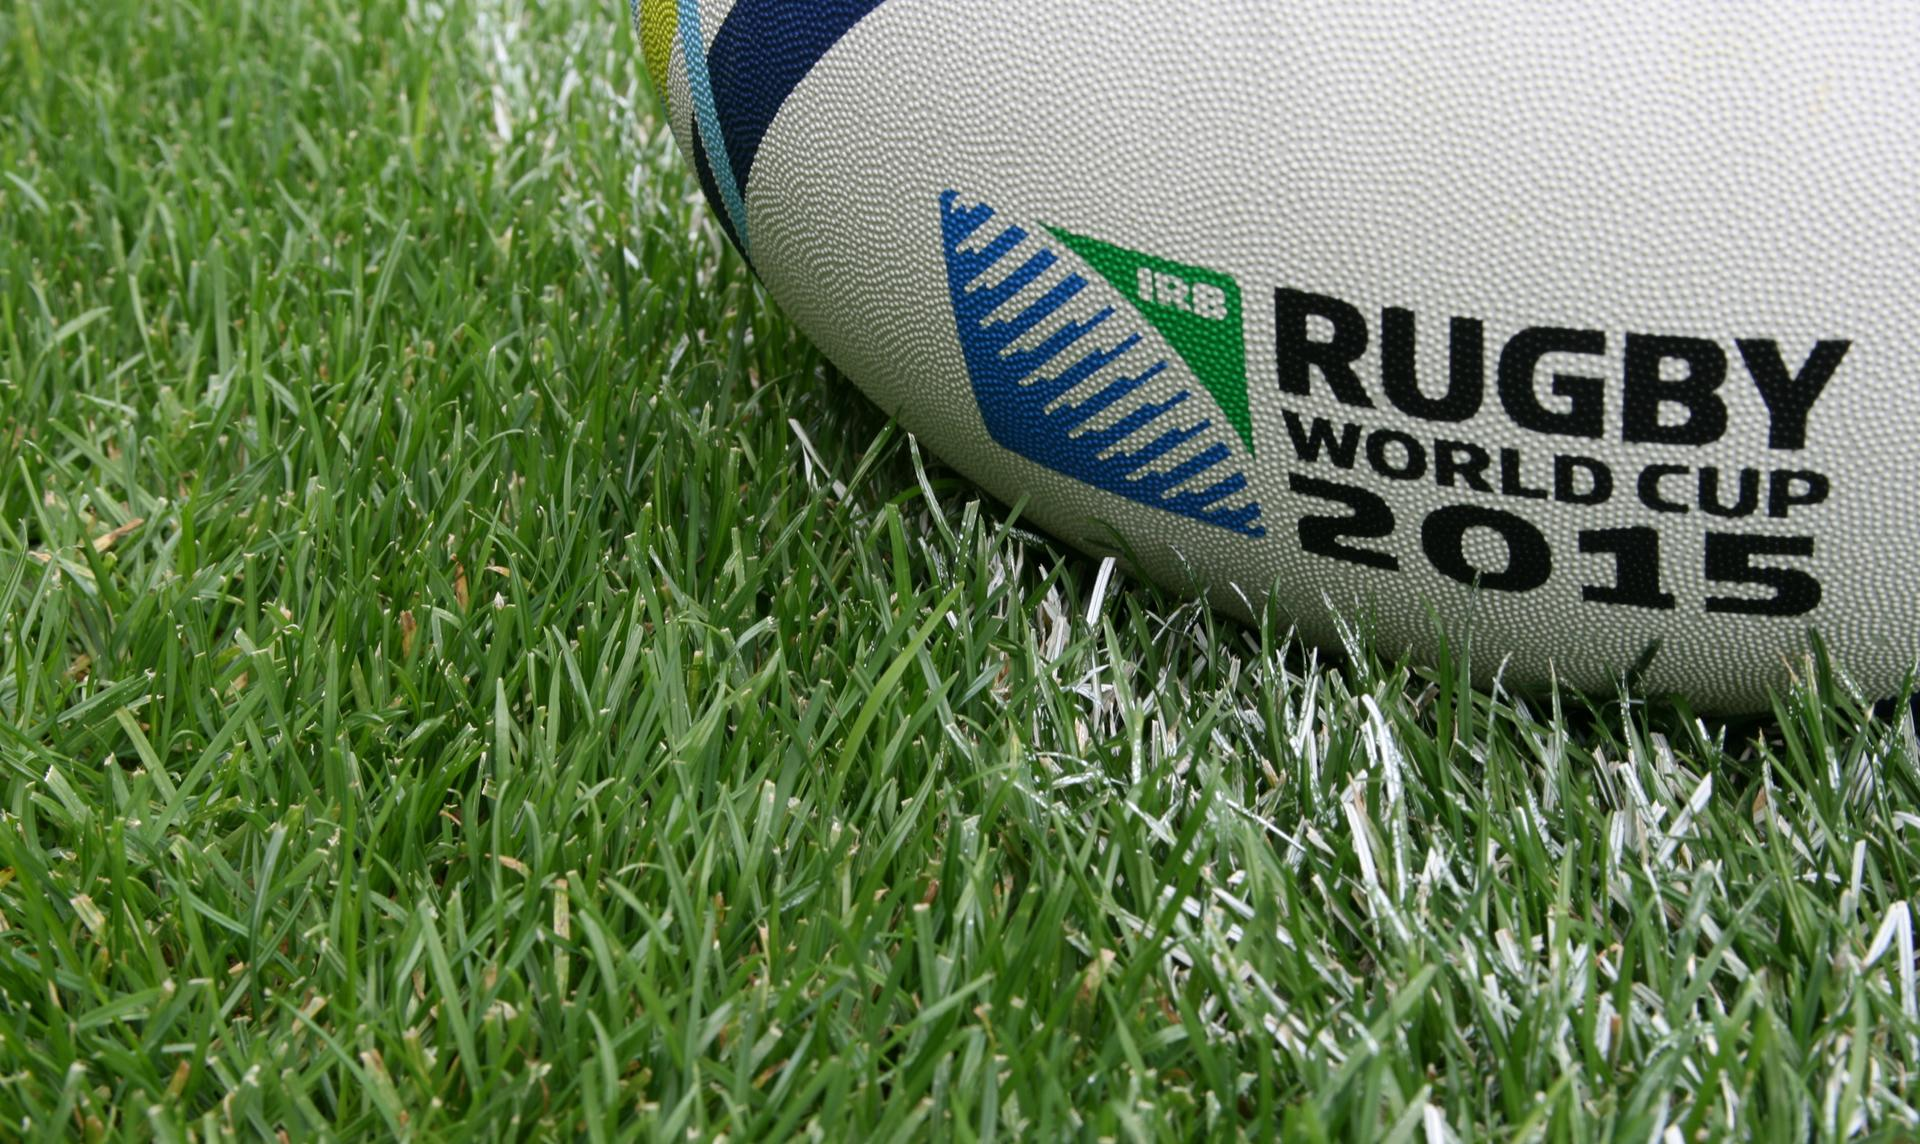 1920x1144 - Rugby World Cup 2015 Wallpapers 30